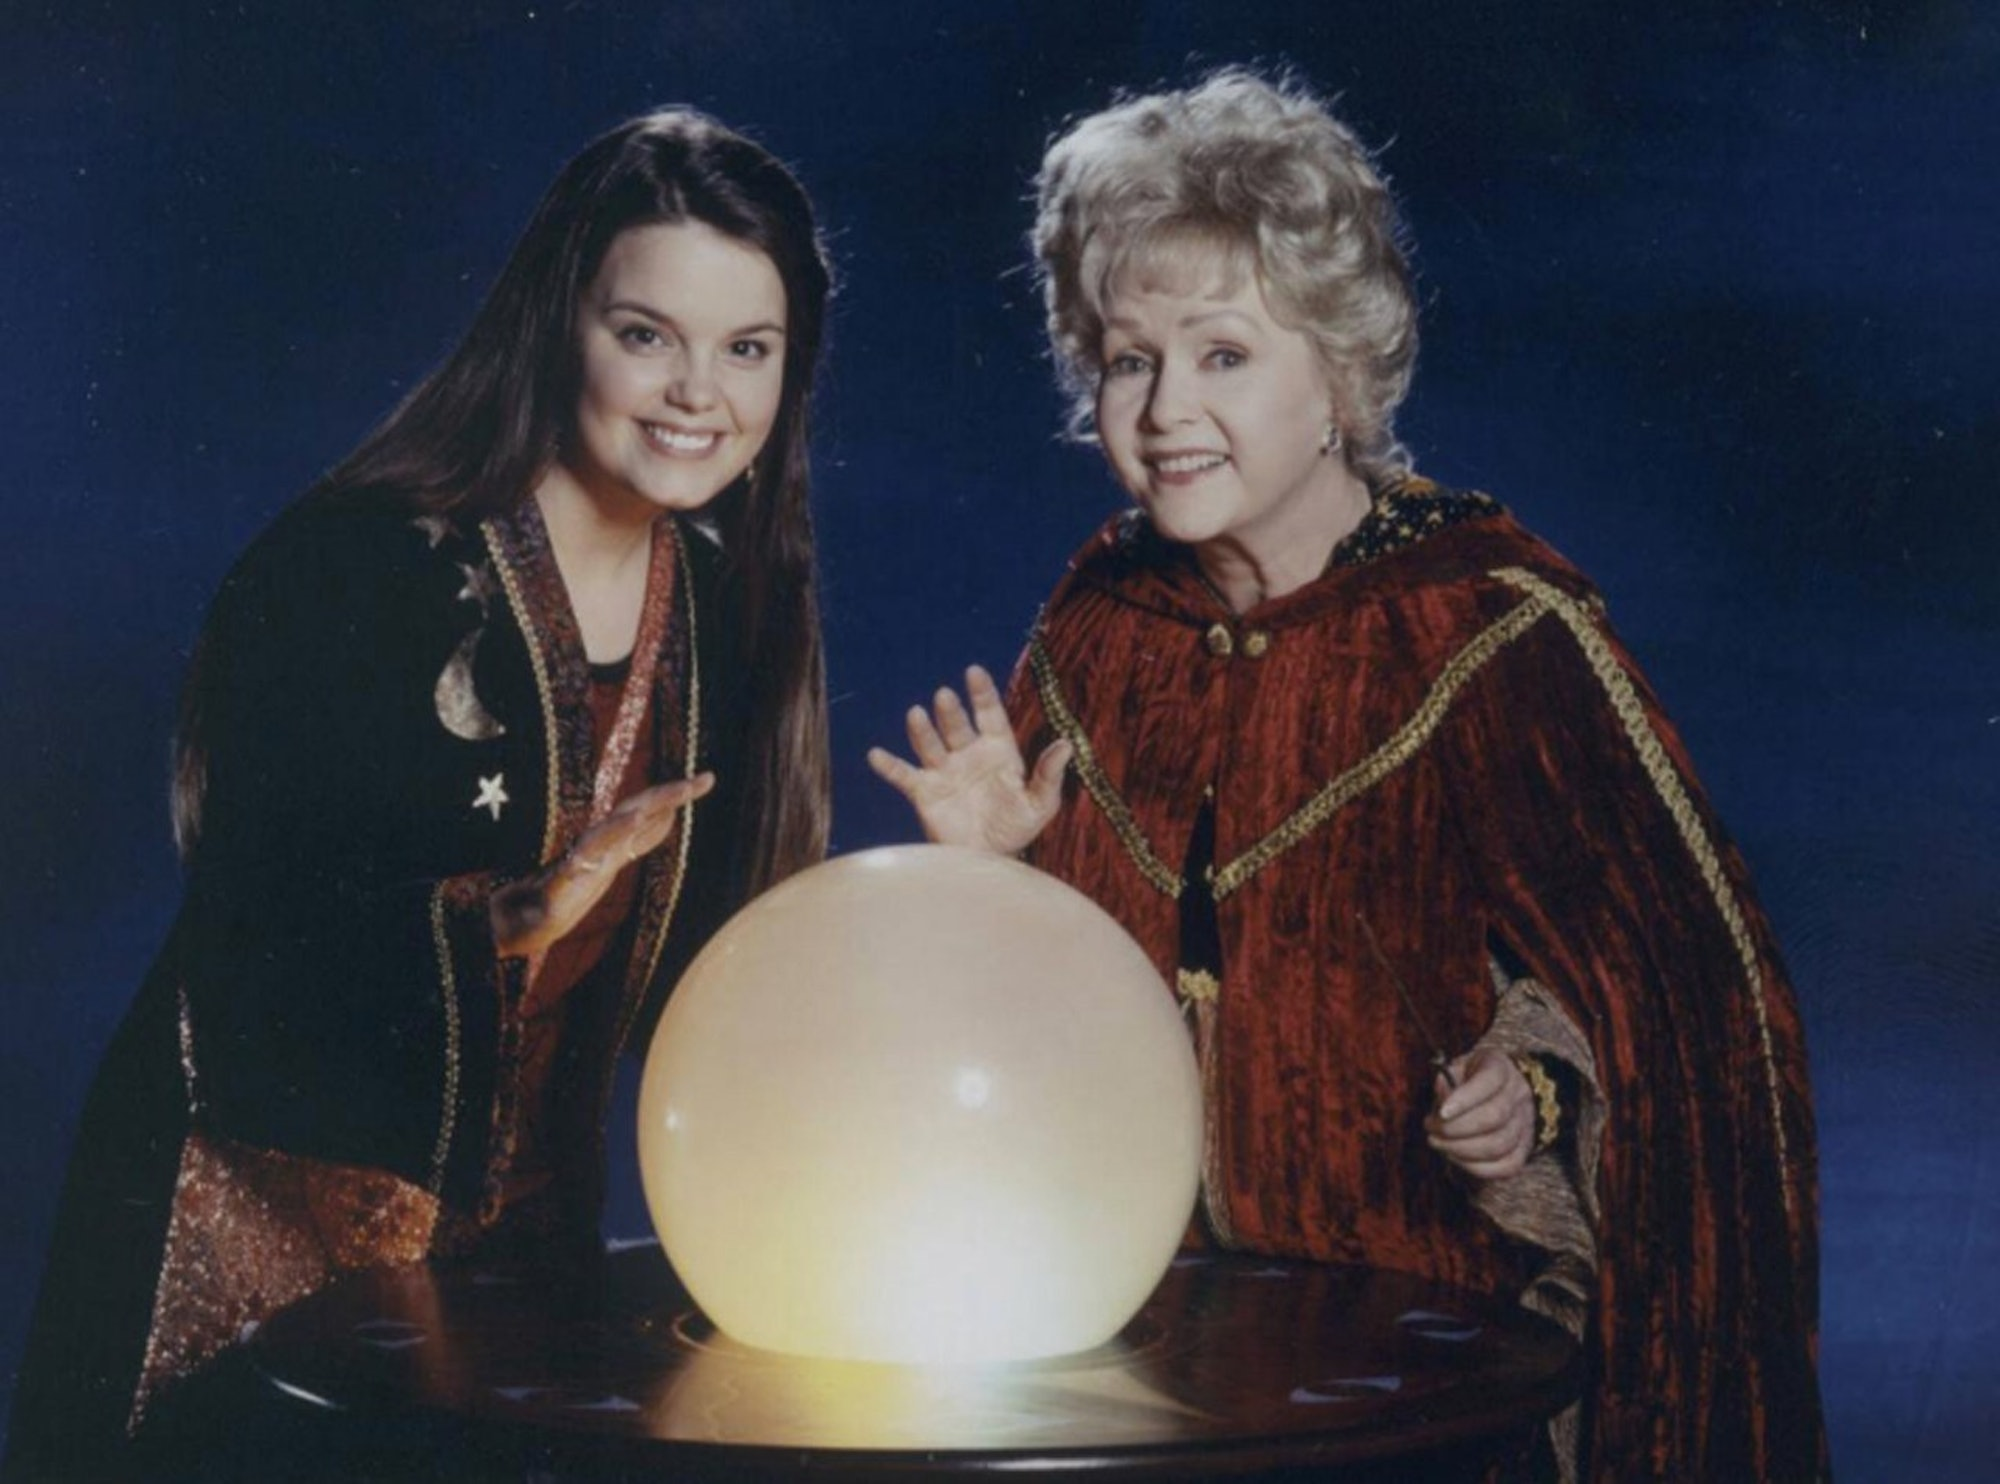 why did 'halloweentown' change marnie's actress? the cromwell witch